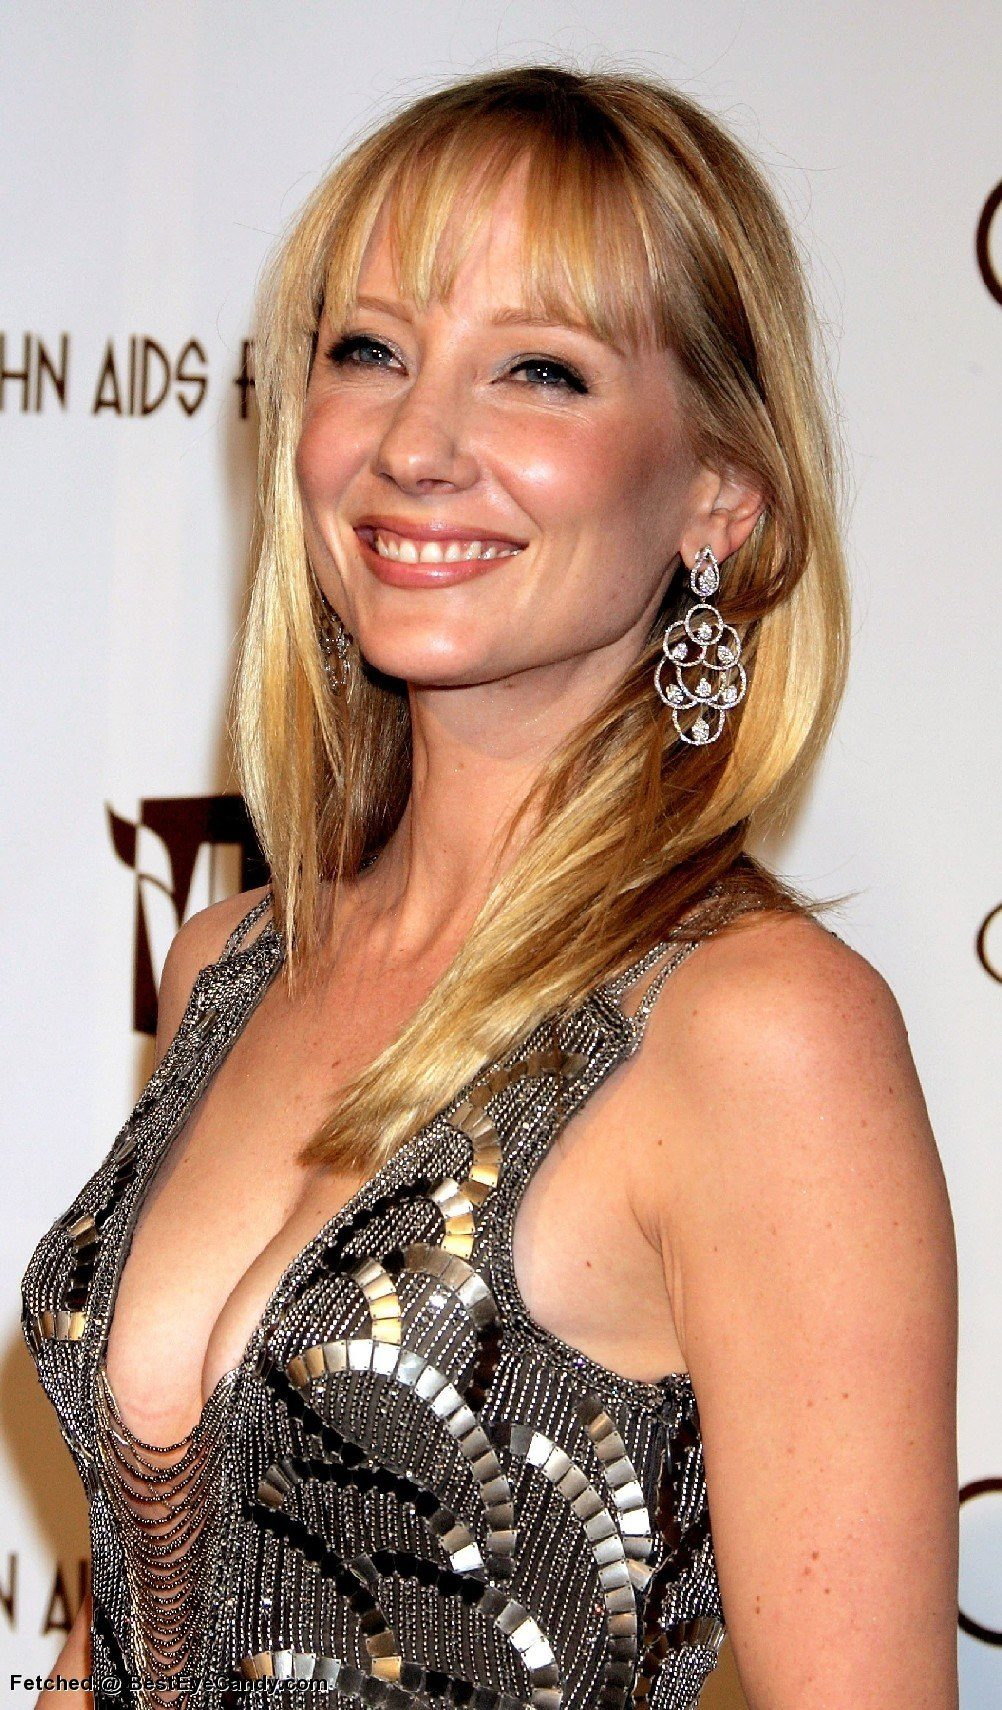 anne-heche-height-weight-age-bra-size-body-stats-affairs-boy-friends-3